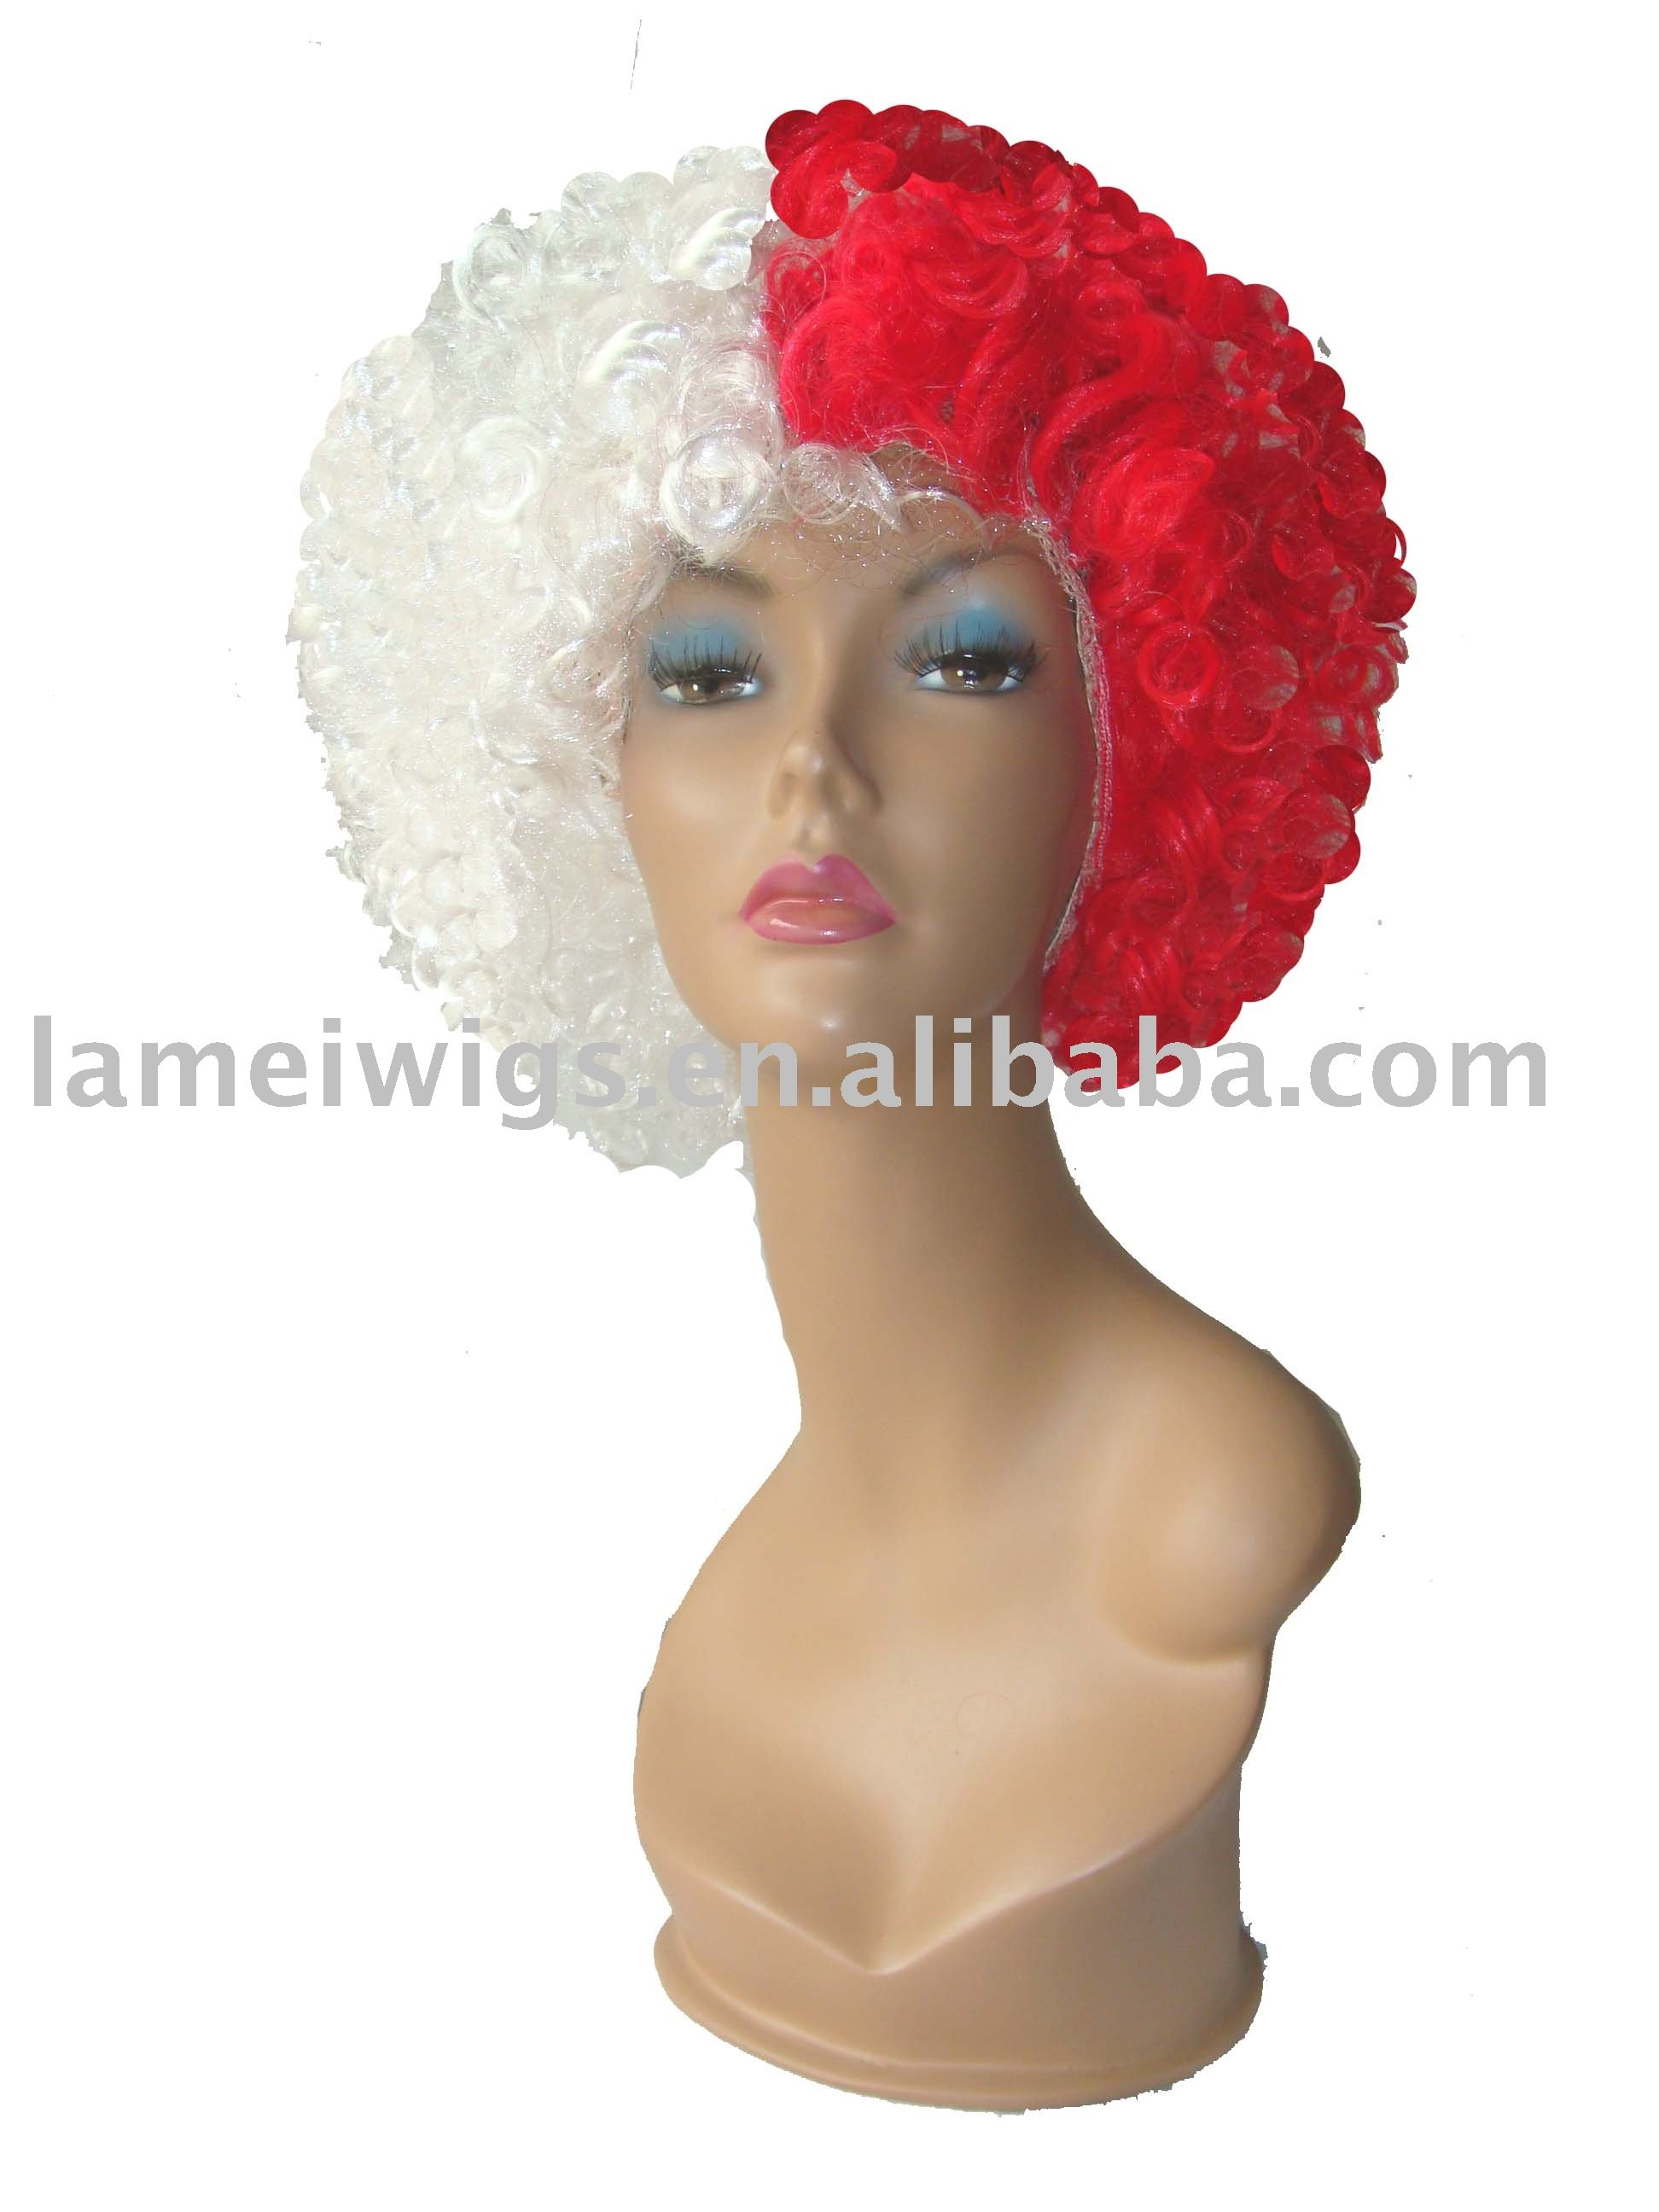 Party / Carnival / Funky / Halloween Wigs